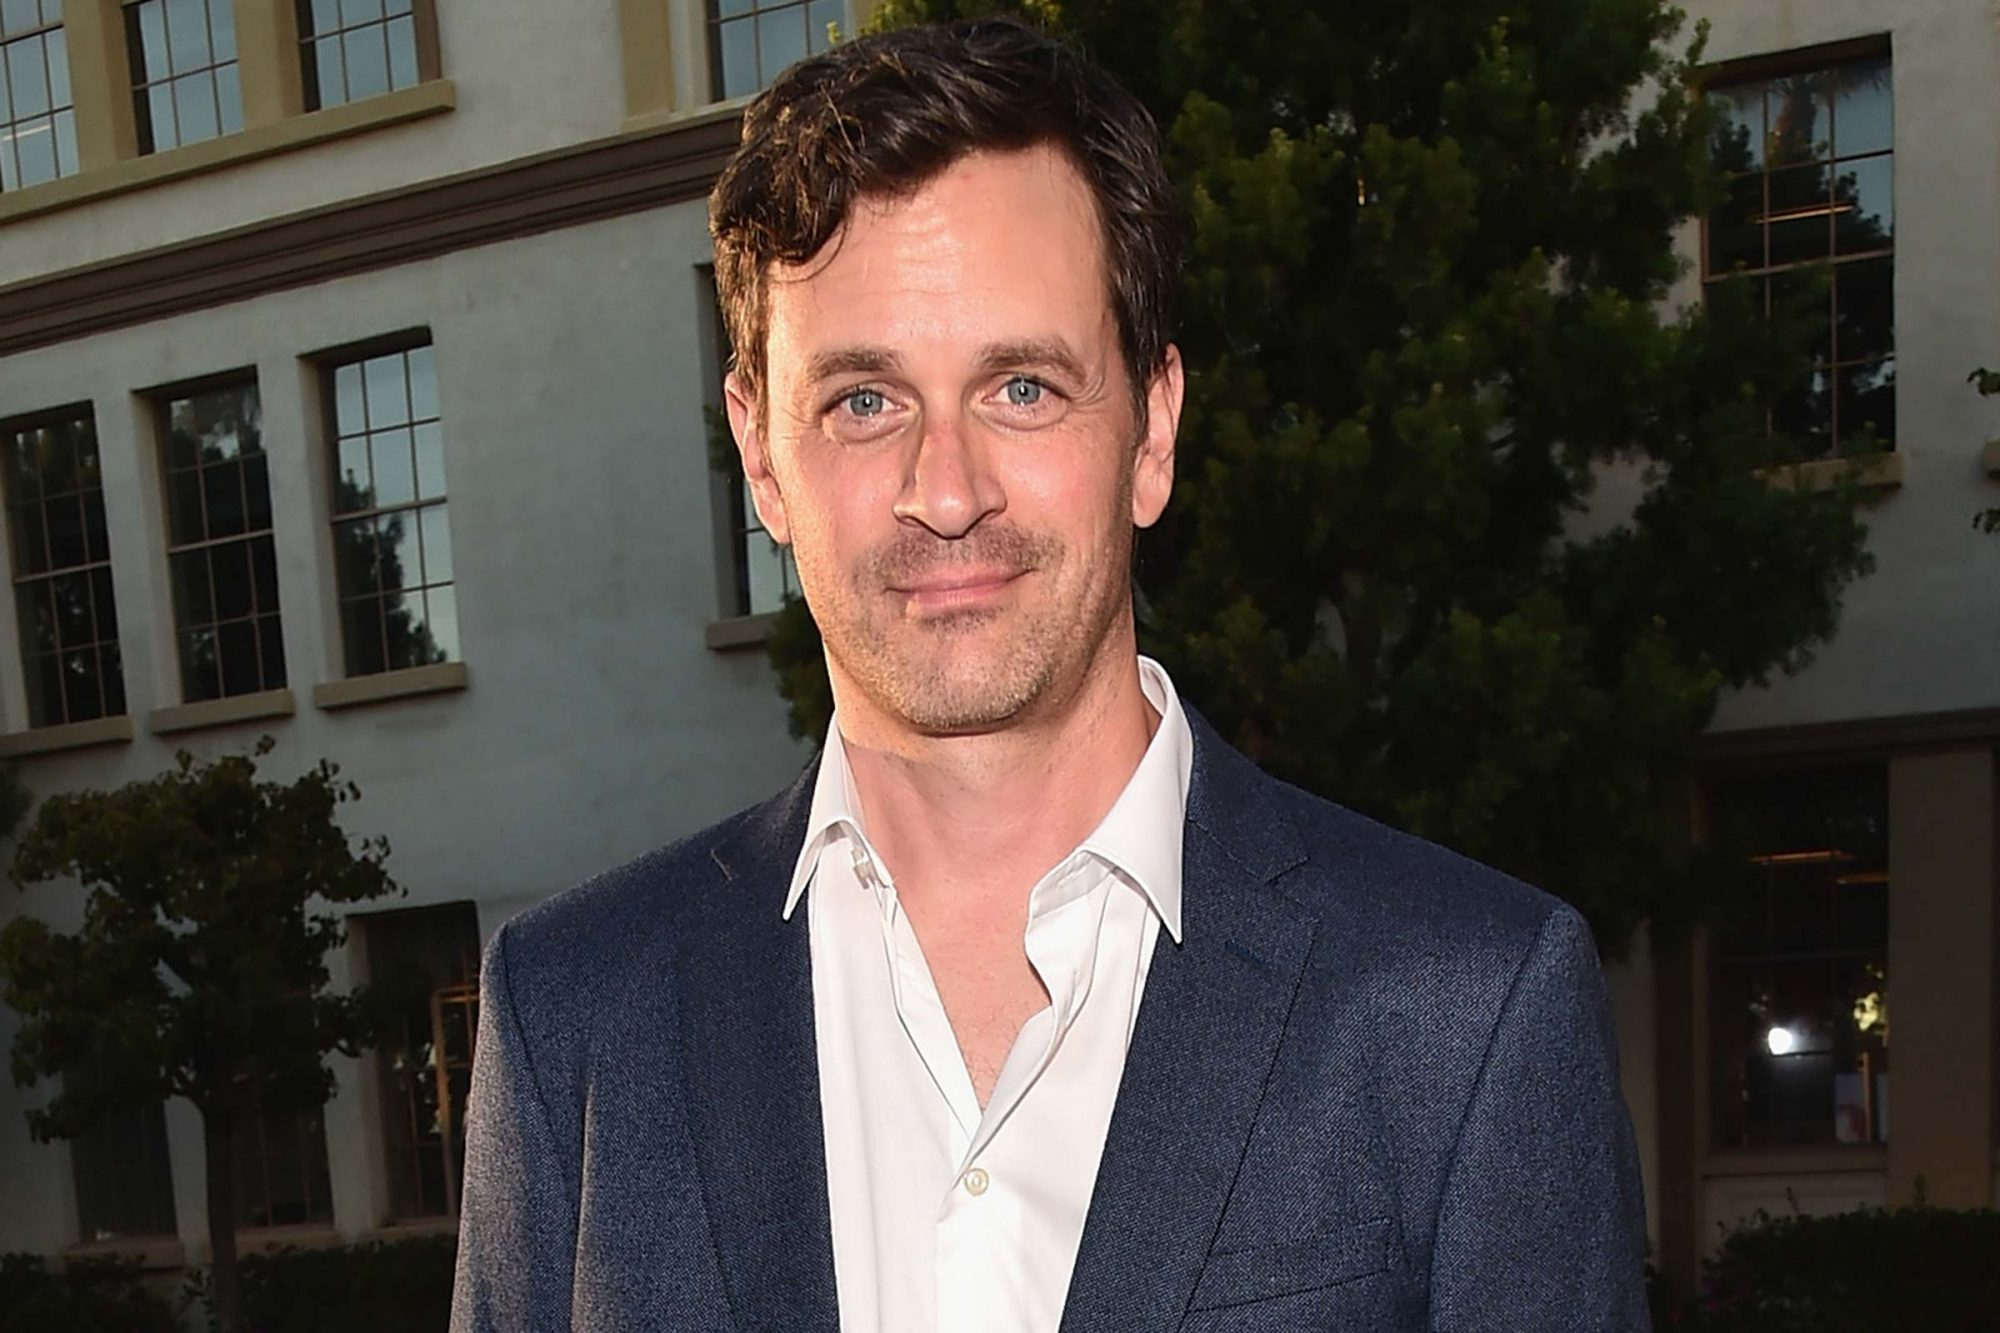 """598318902 HOLLYWOOD, CA - AUGUST 31: Actor Tom Everett Scott attends the premiere of Lifetime's """"Sister Cities"""" at Paramount Theatre on August 31, 2016 in Hollywood, California. (Photo by Alberto E. Rodriguez/Getty Images)"""